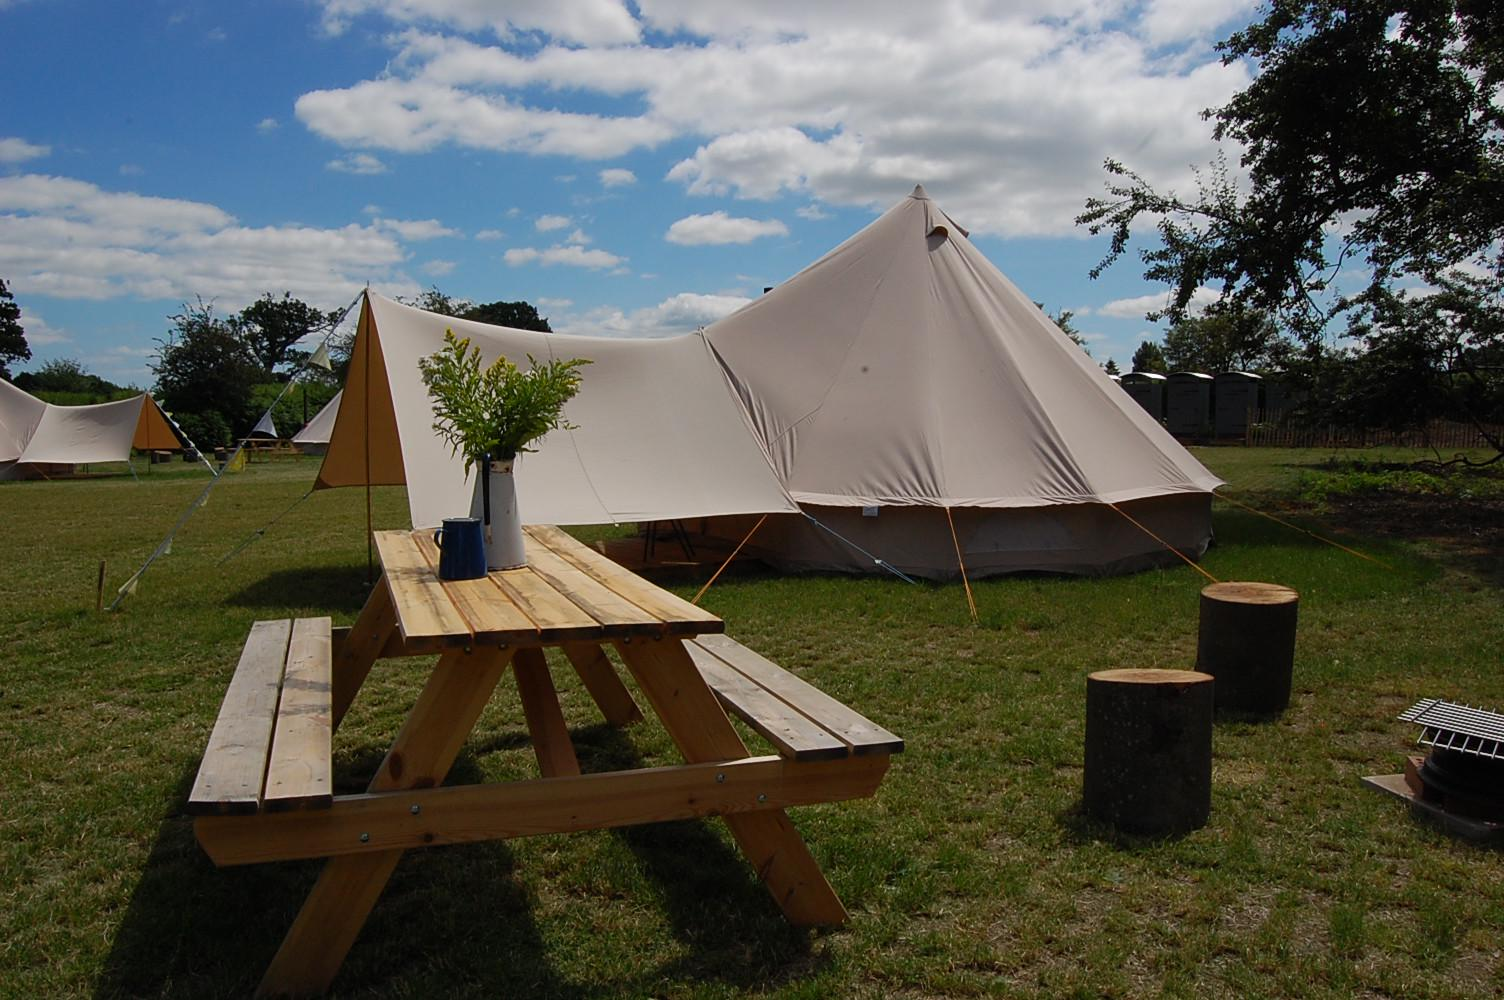 Campsites in Wroxham & Hoveton holidays at Cool Camping